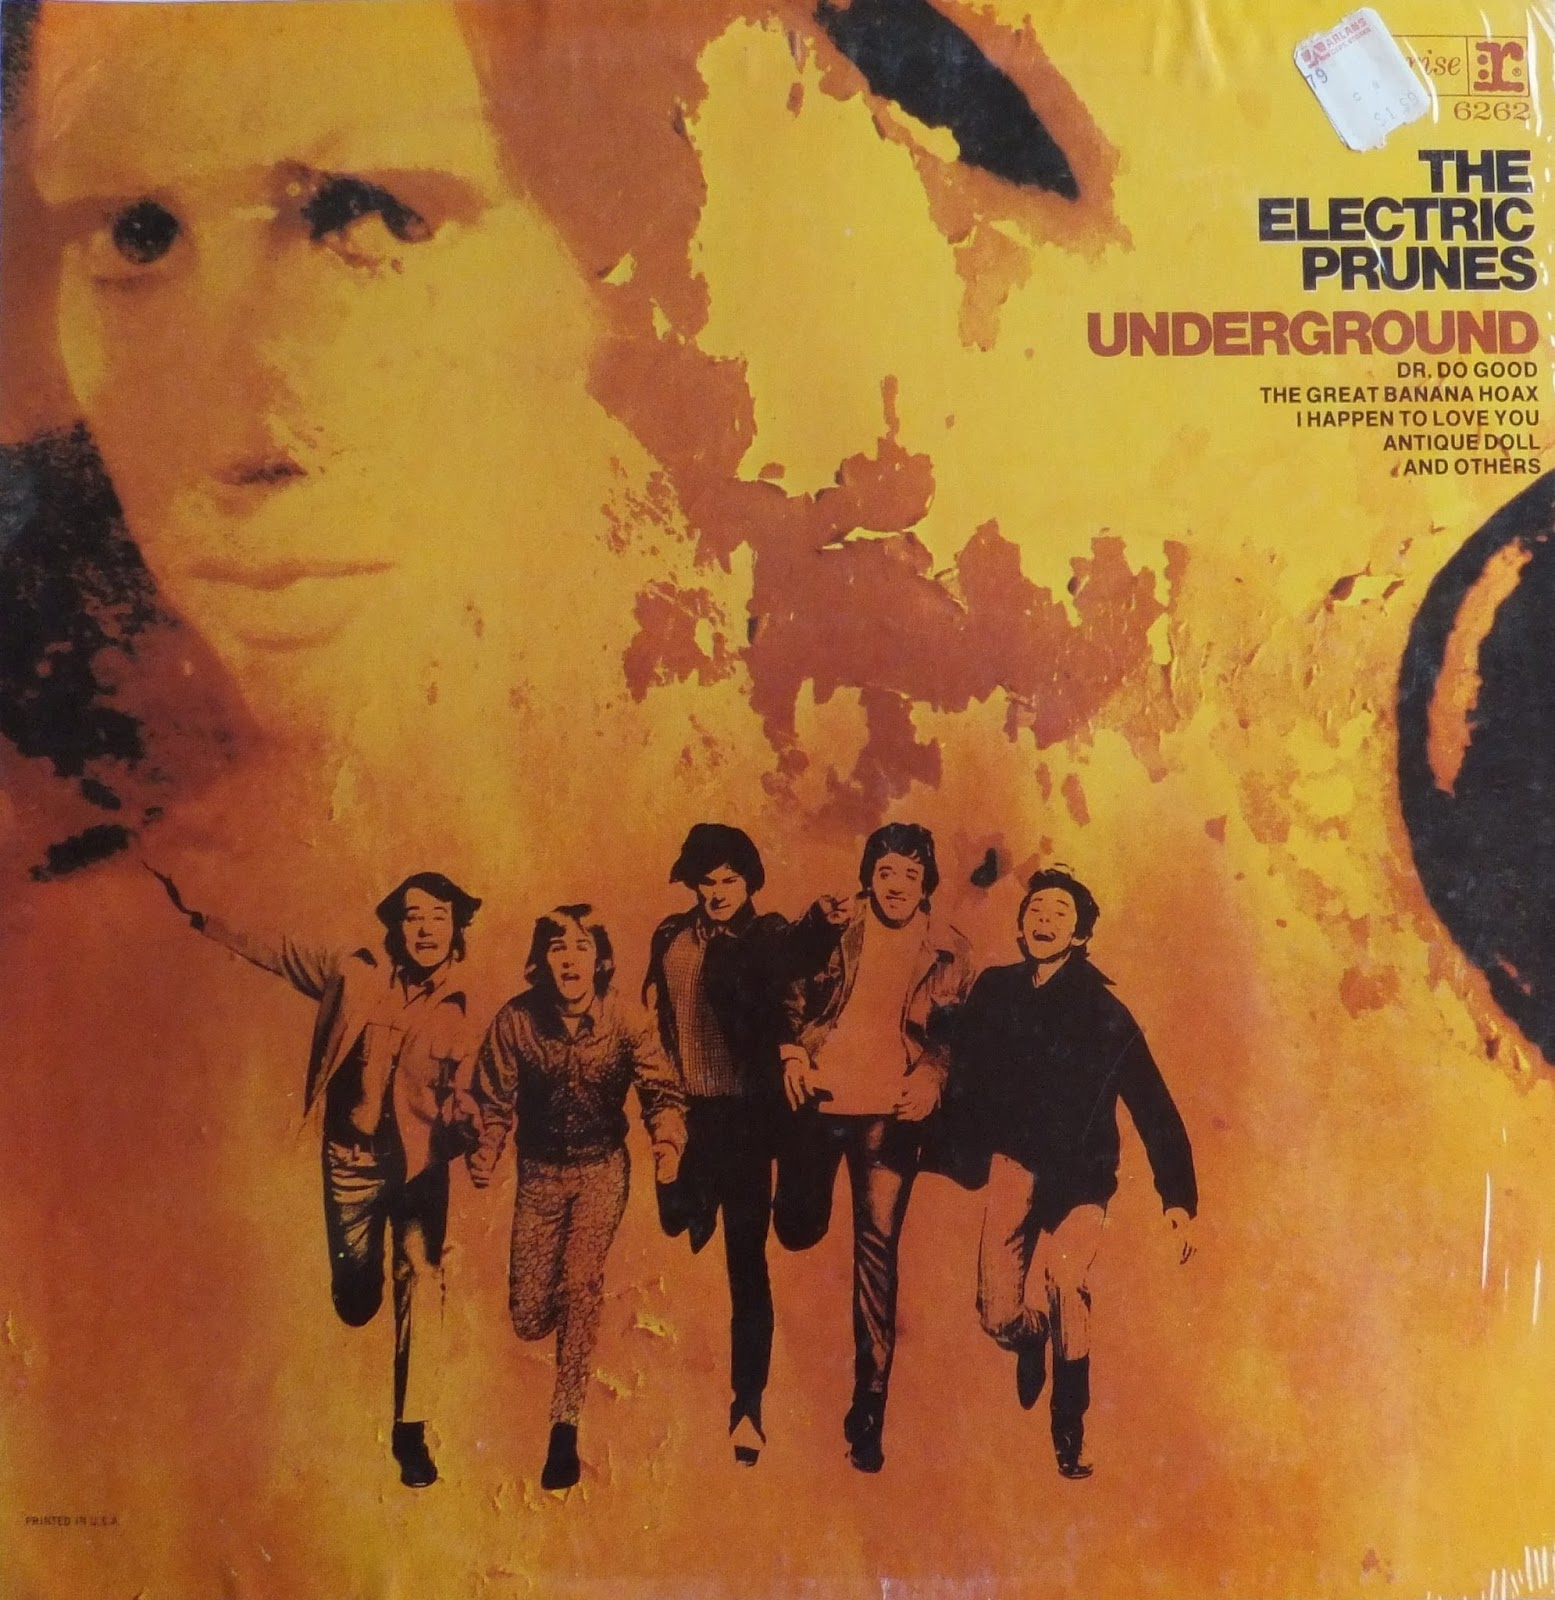 Prof Stoned Rare Amp Deleted Vinyl The Electric Prunes